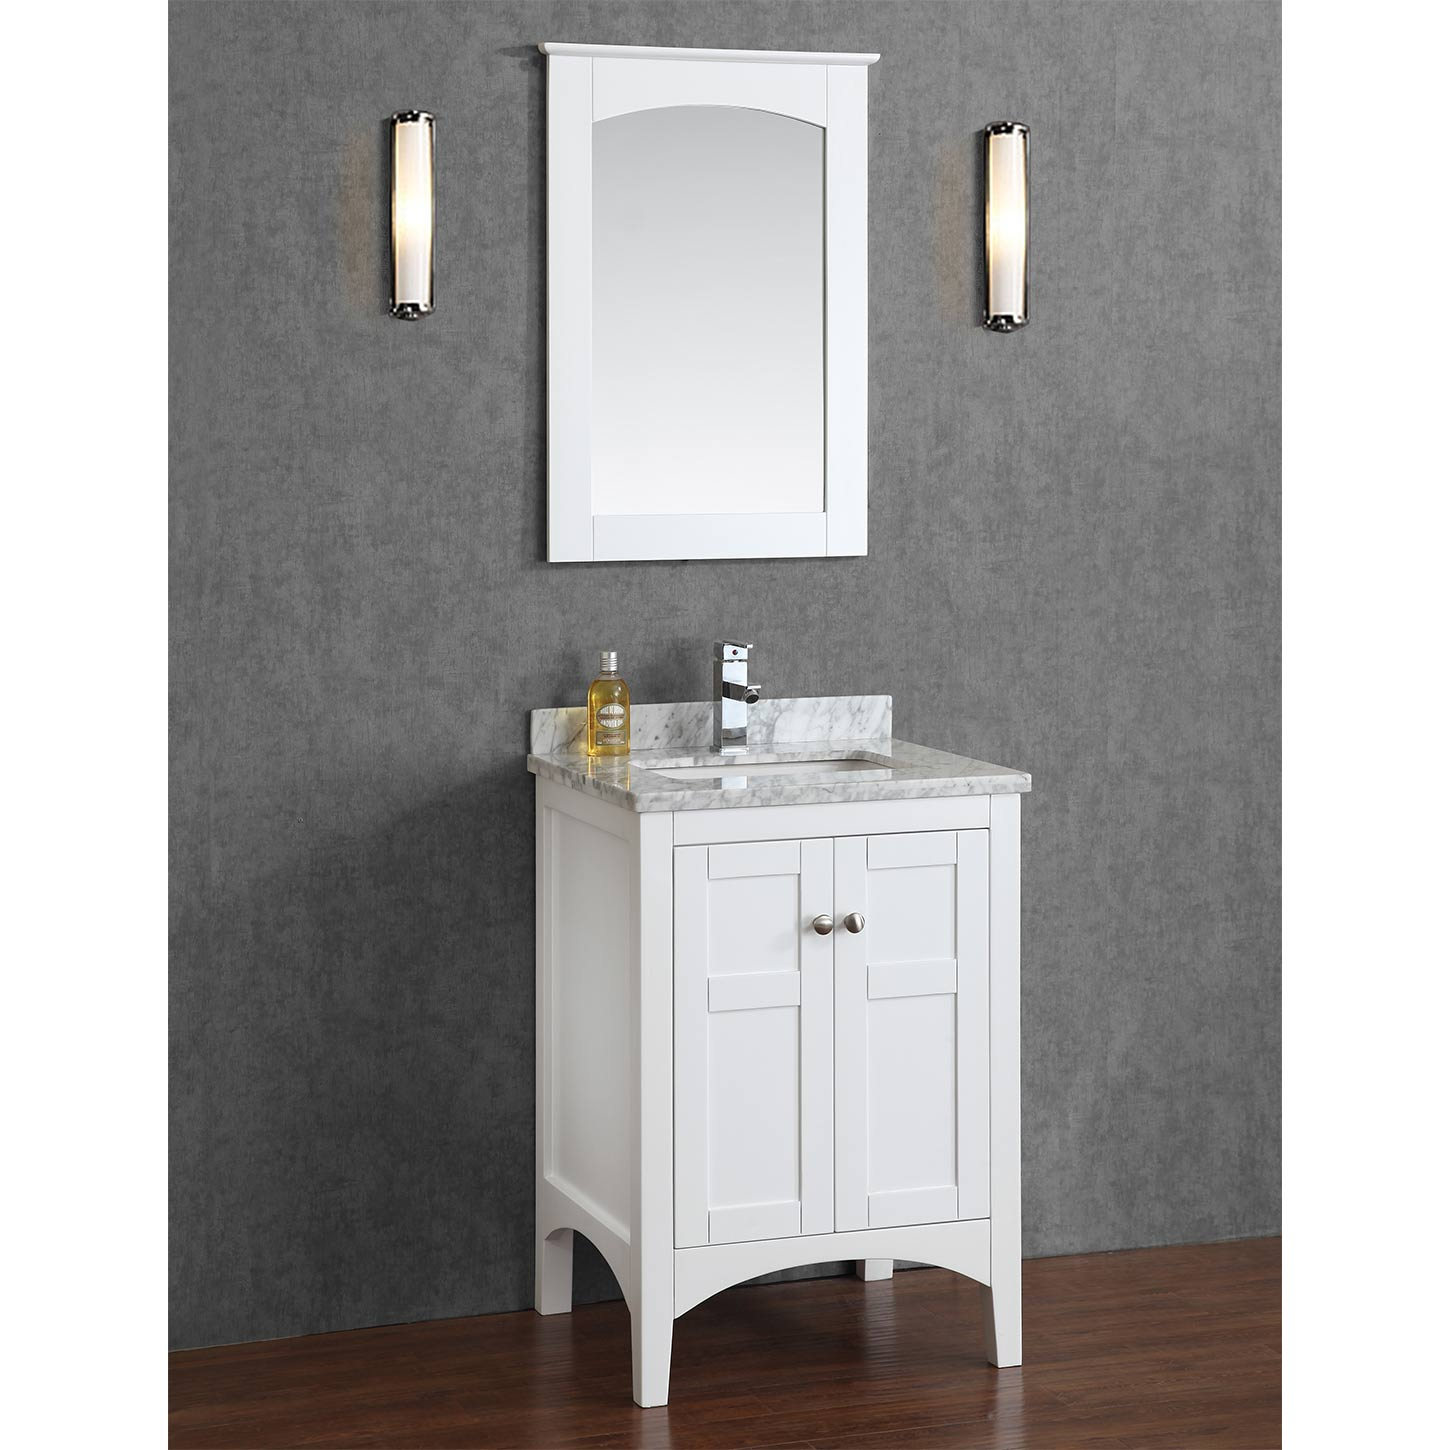 Buy Martin 24 Solid Wood Single Bathroom Vanity In White HM 001 24 WMSQ